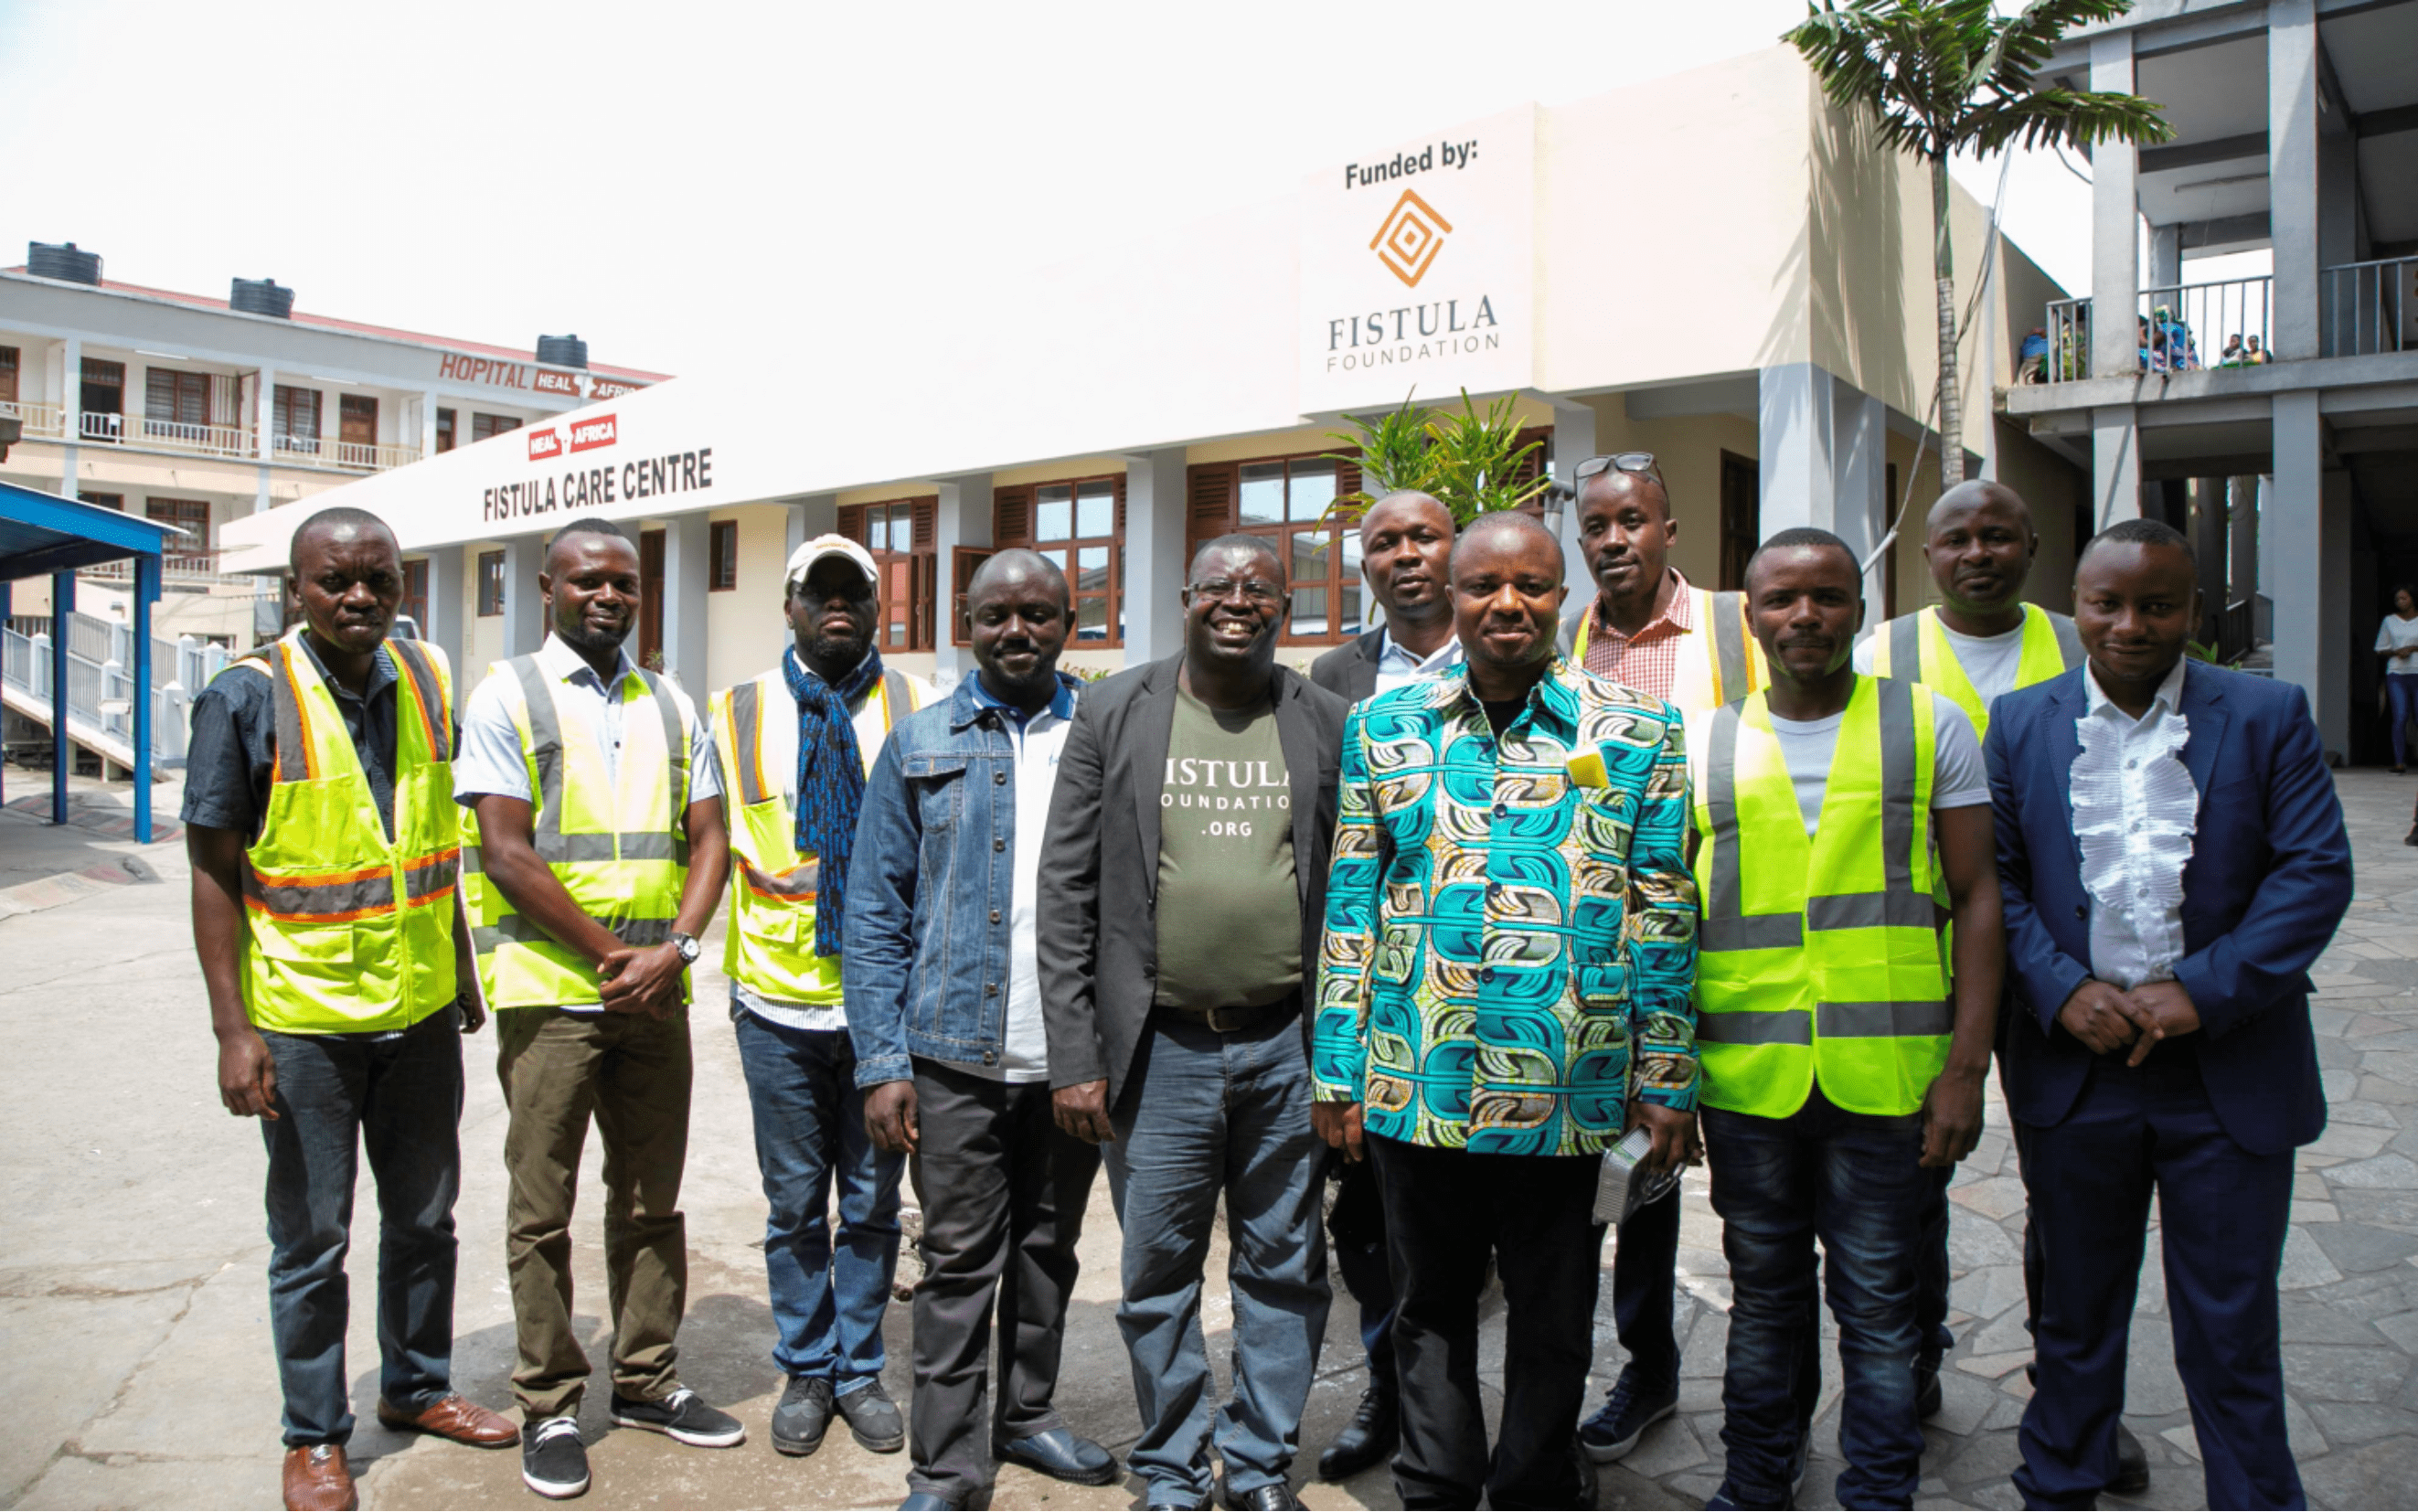 Construstion crew in front of newly built fistula ward